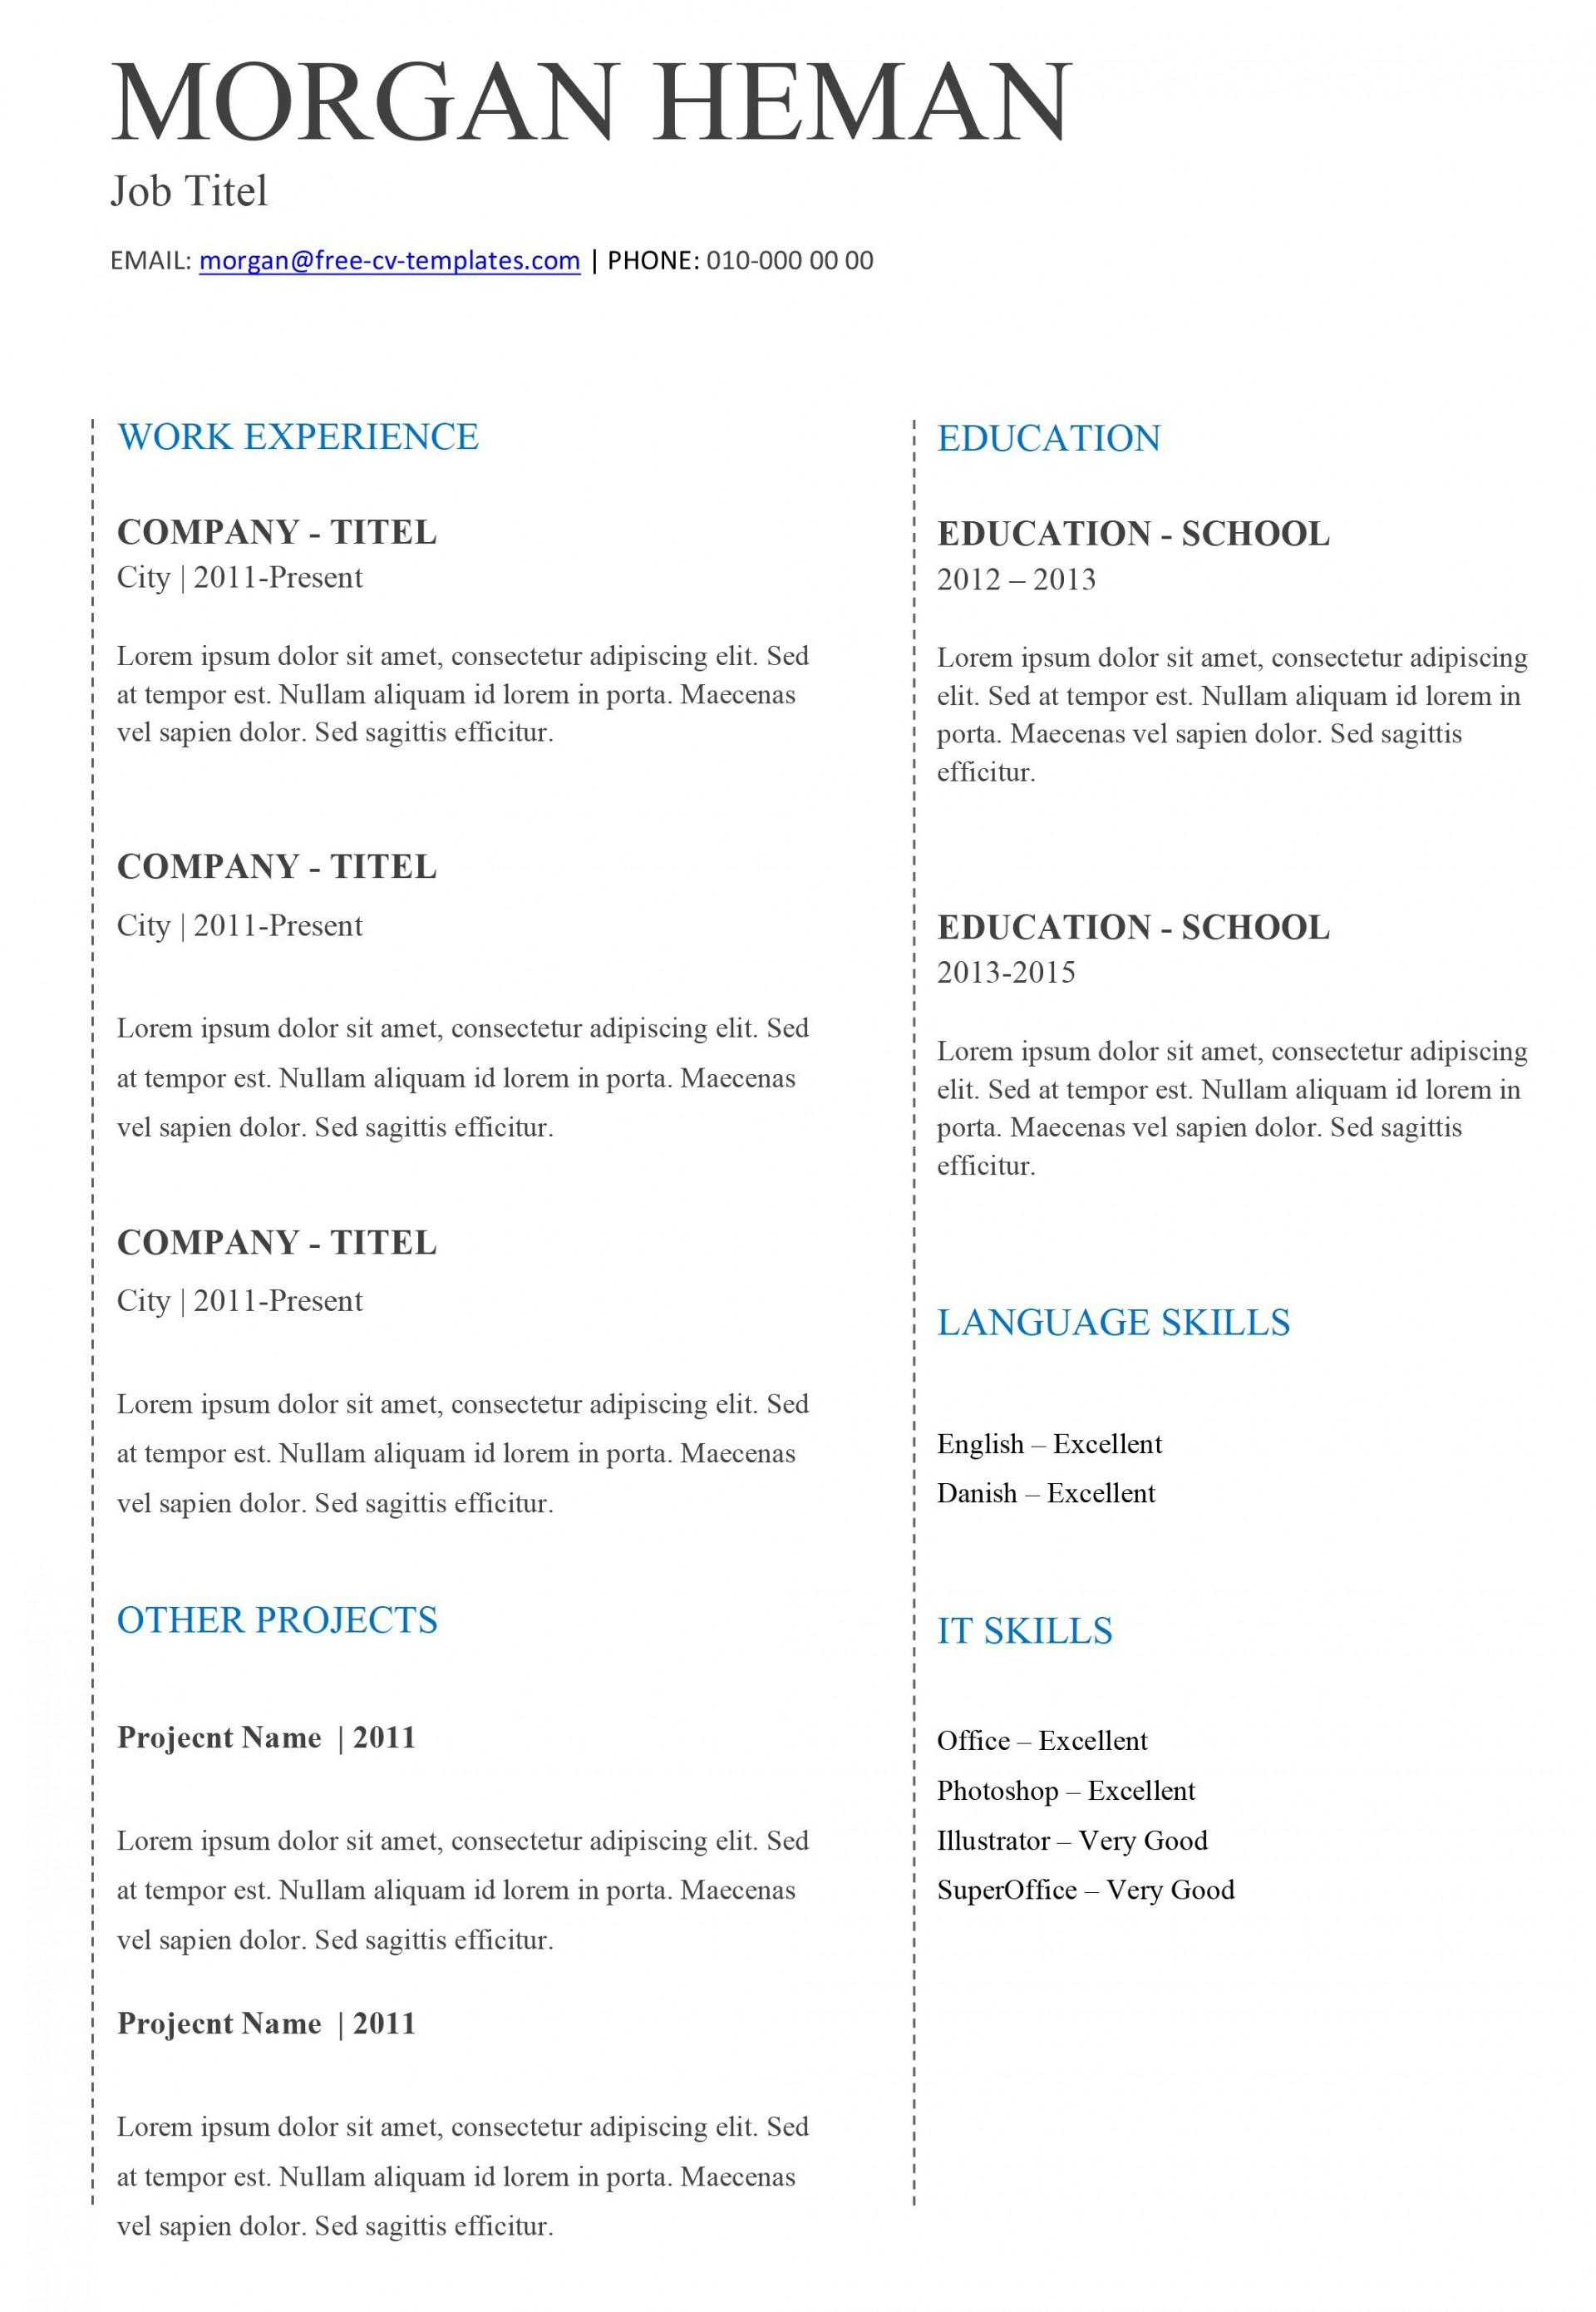 005 Formidable Easy Resume Template Free Image  Simple Download Online Word1920